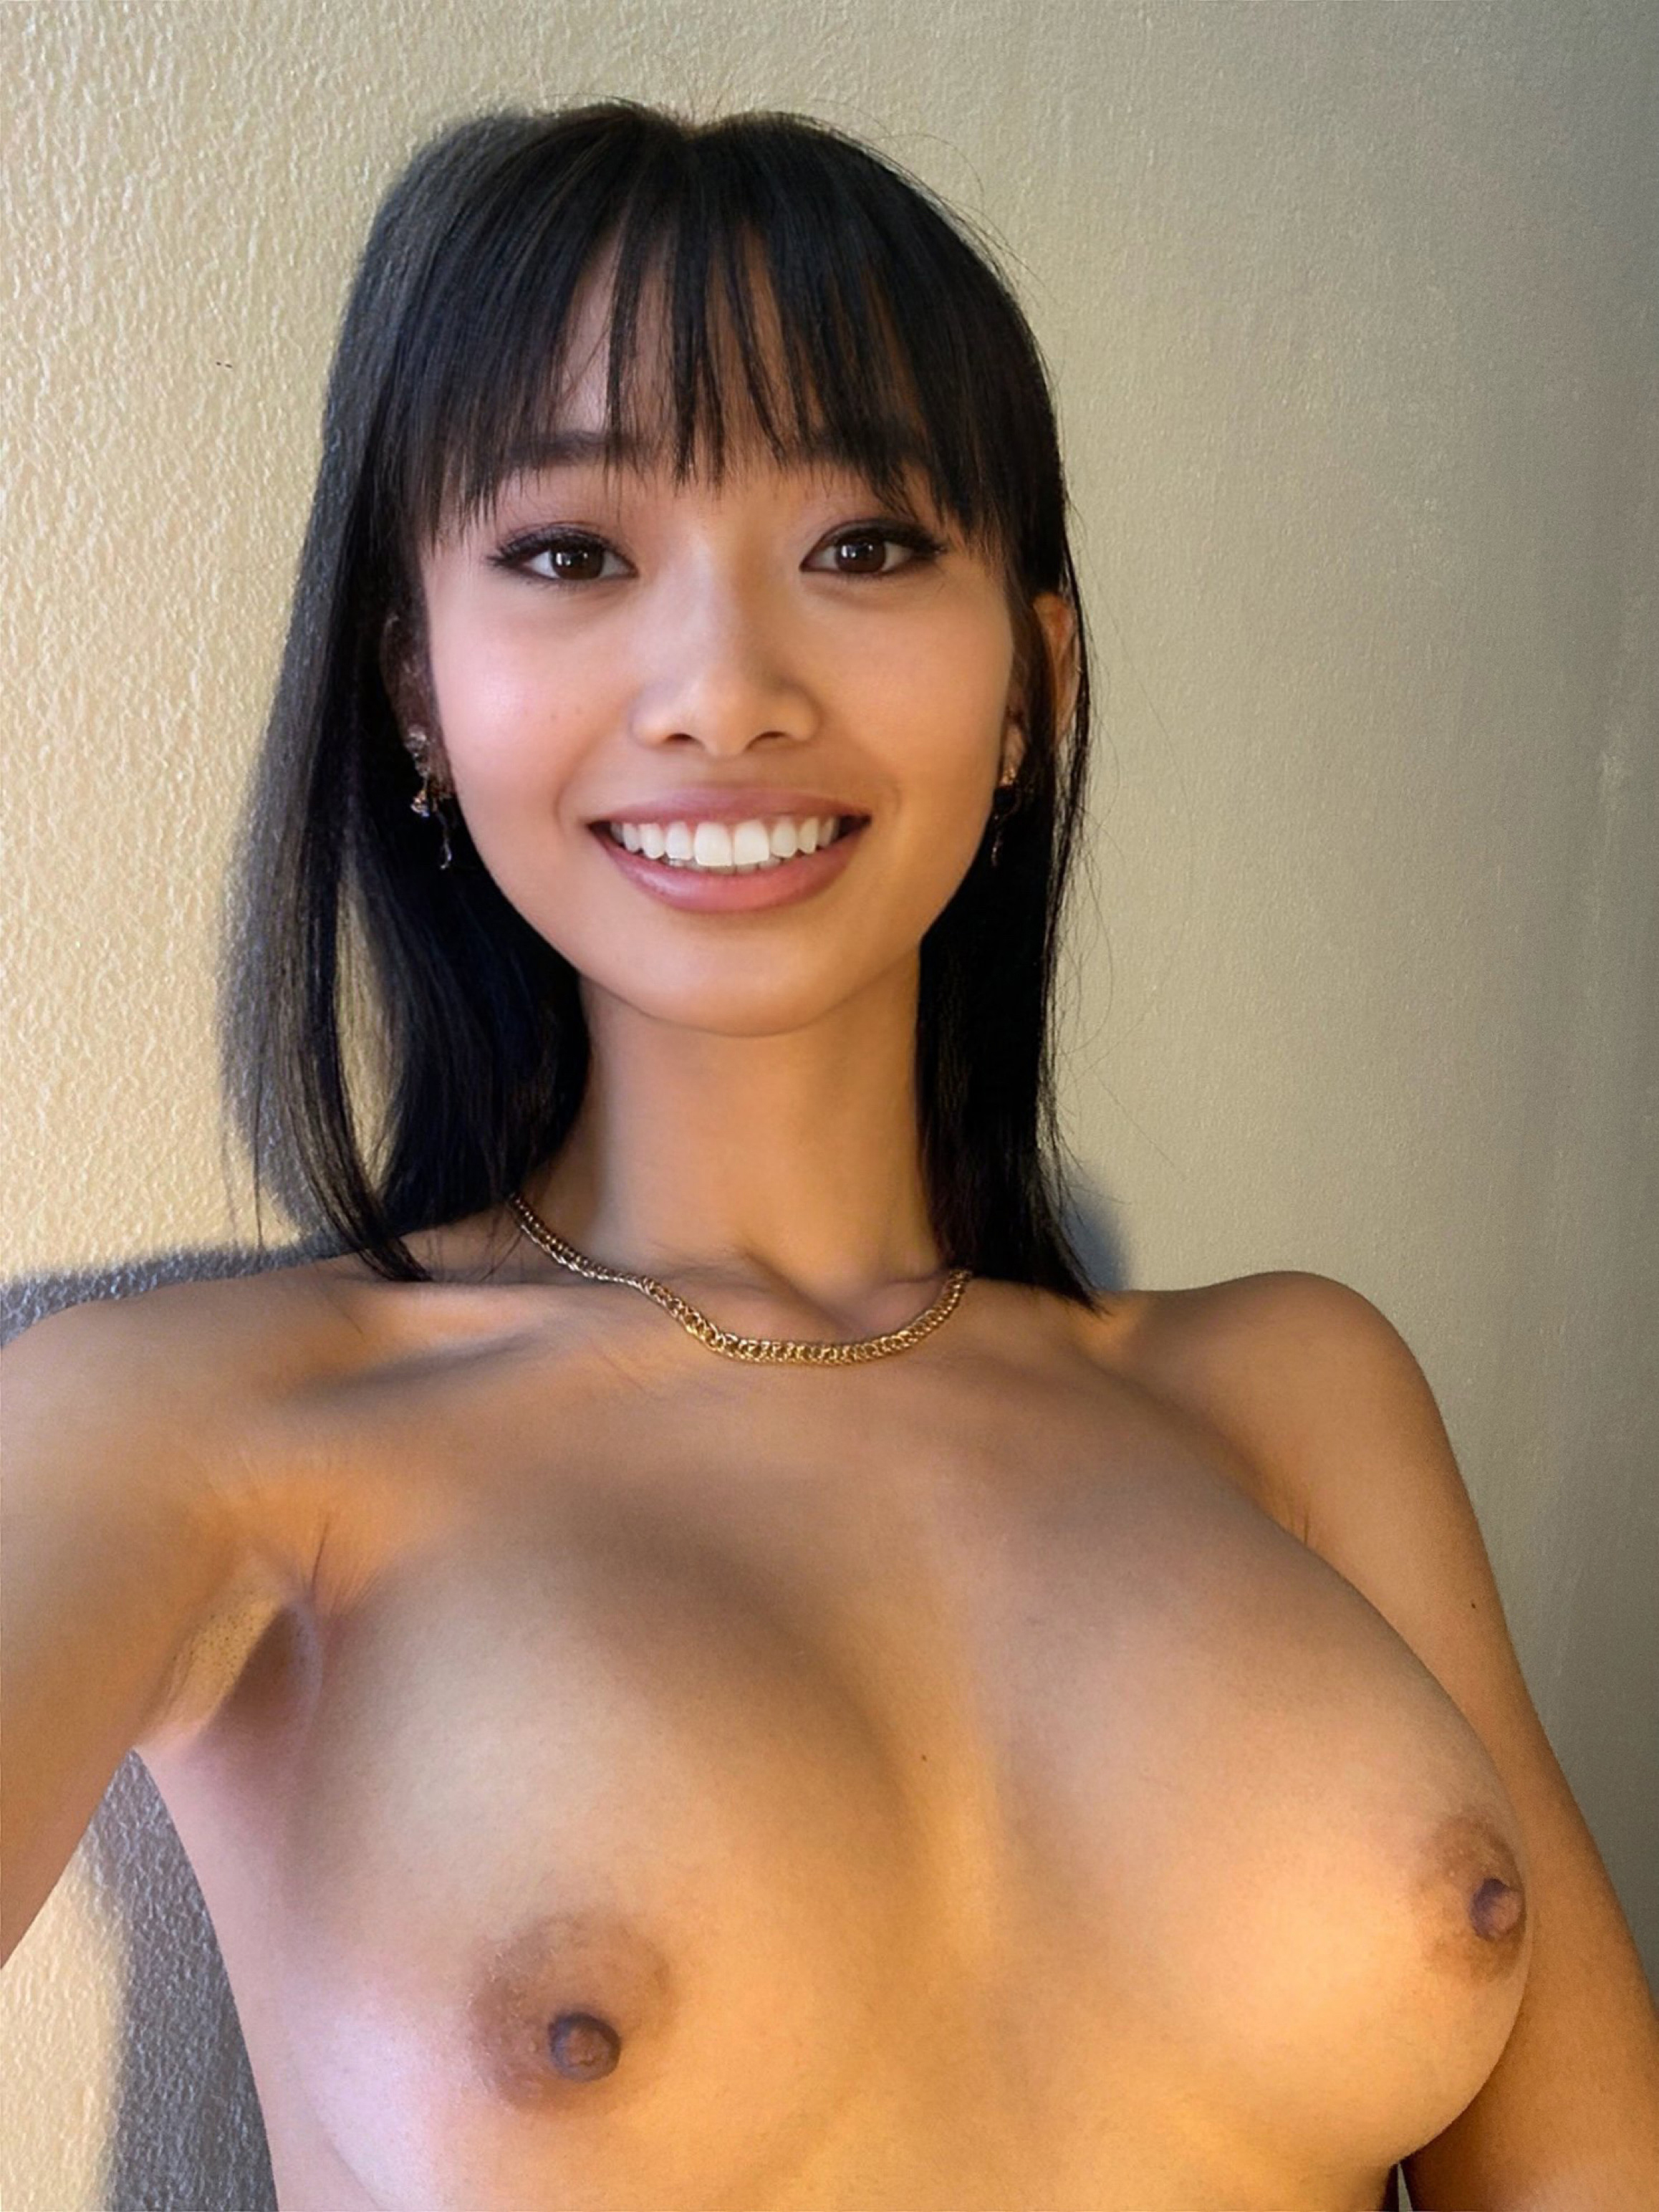 One of our naked asian pics called Looking for someone to play with the girls and suck them 😍🍒